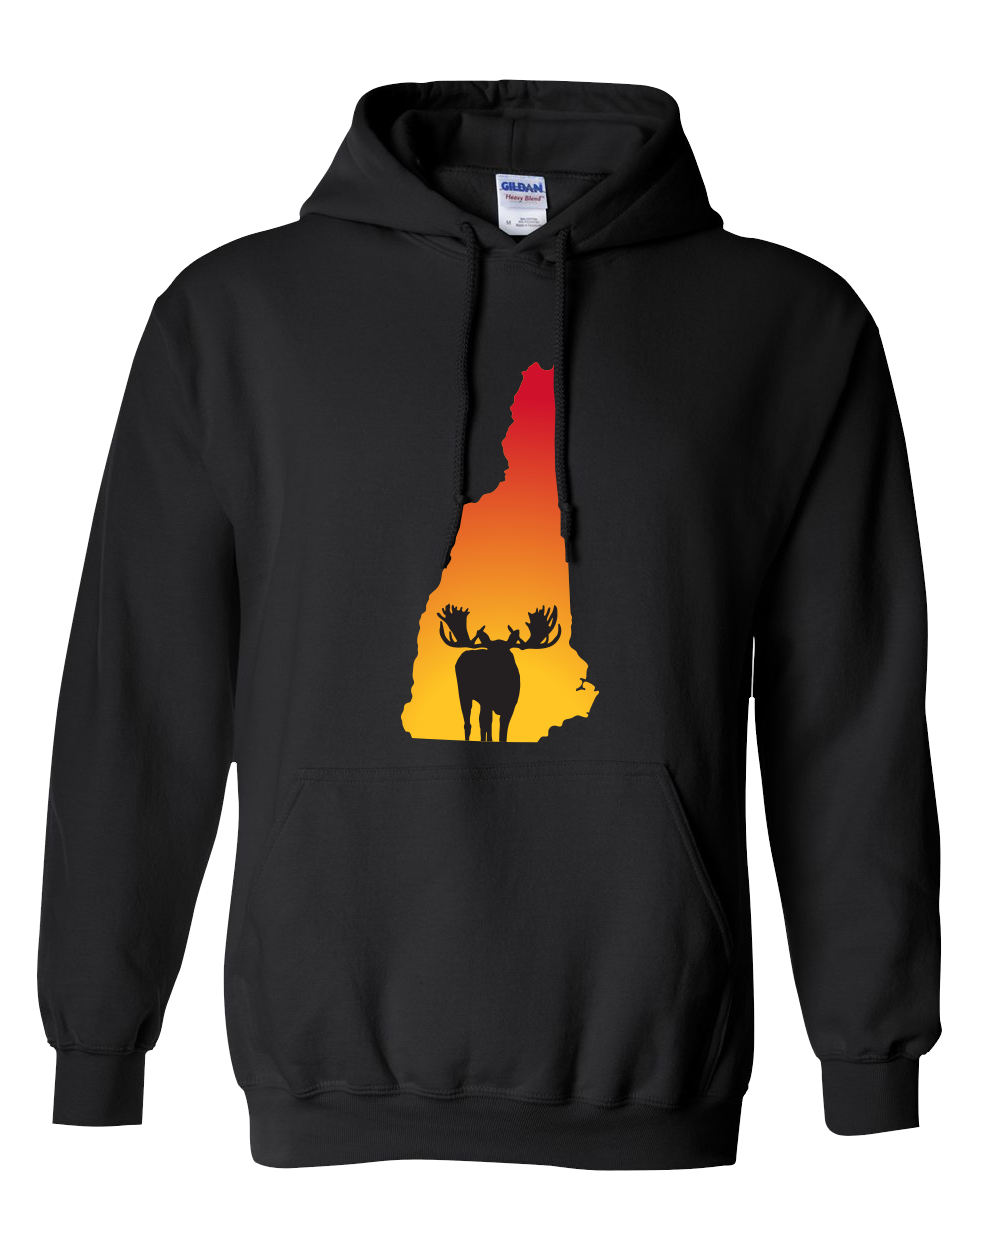 Pullover Hooded Sweatshirt New Hampshire Black Moose Vibrant Design High Quality Tight Knit Ring Spun Low Maintenance Cotton Printed With The Newest Available Color Transfer Technology